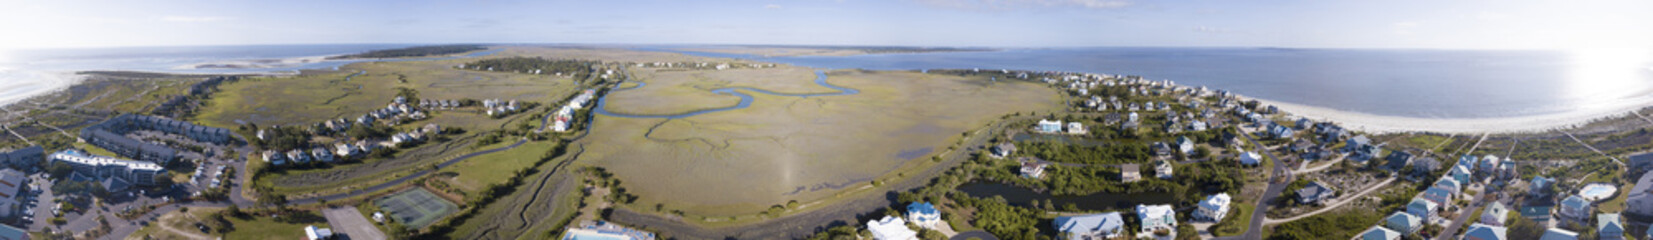 360 degree aerial view of Harbor Island, South Carolina oceanfront properties.